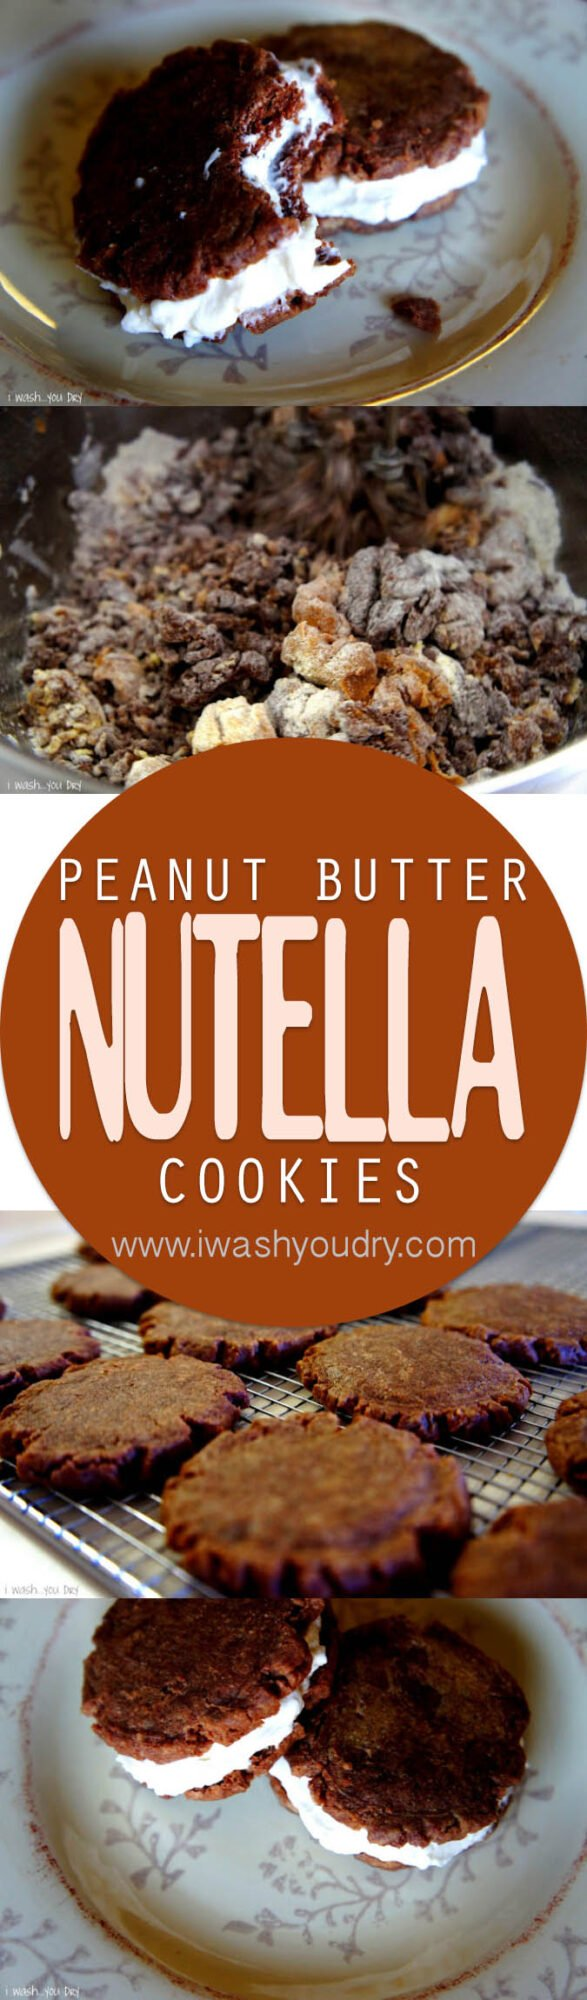 These Nutella Peanut Butter Cookie Sandwiches are so easy and so dang good!